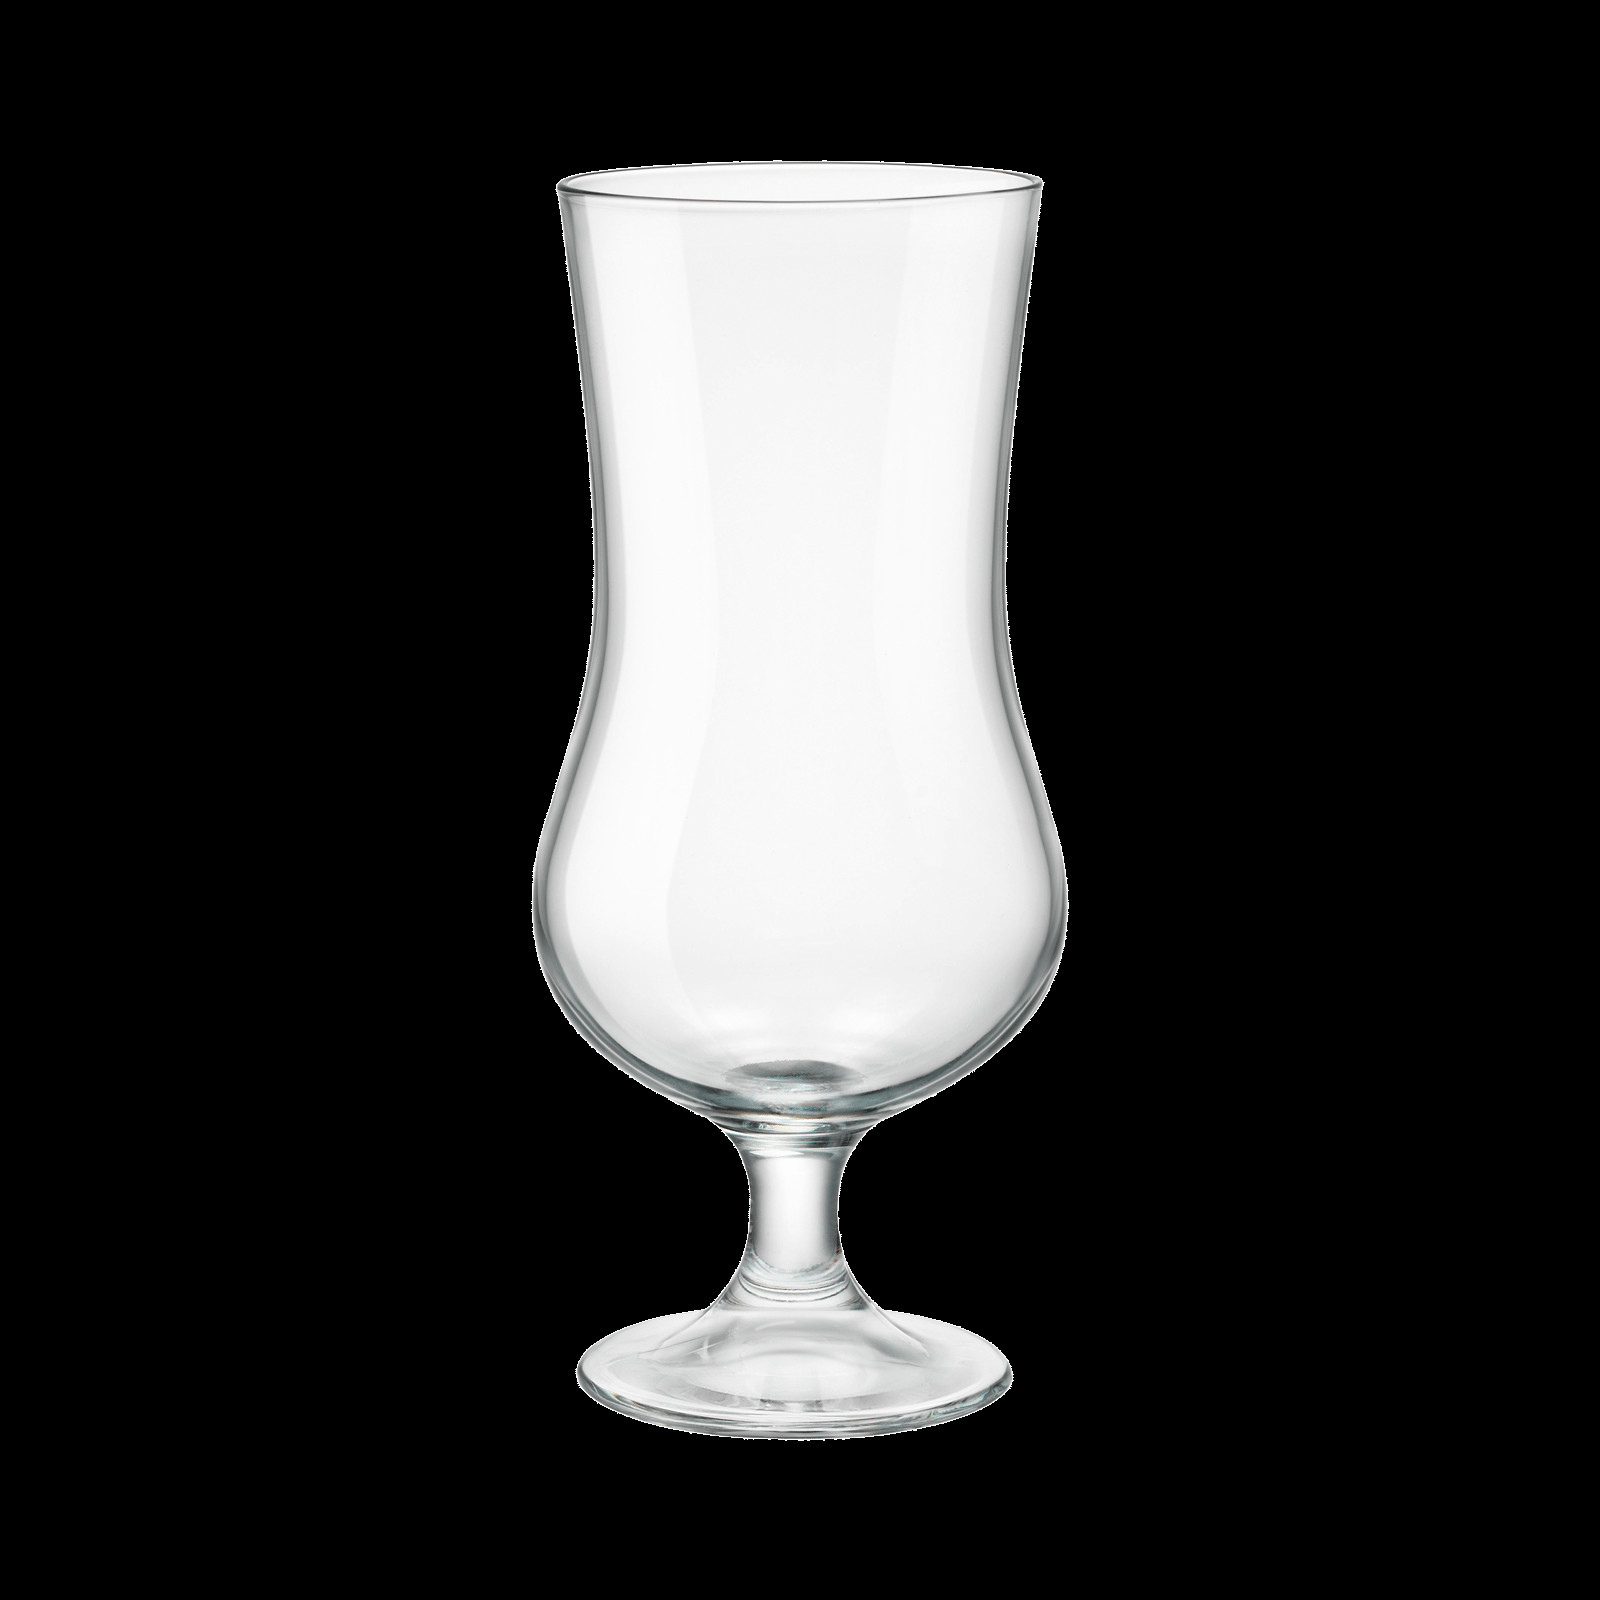 long tall glass vases of archivi products bormioli rocco for large beer glass